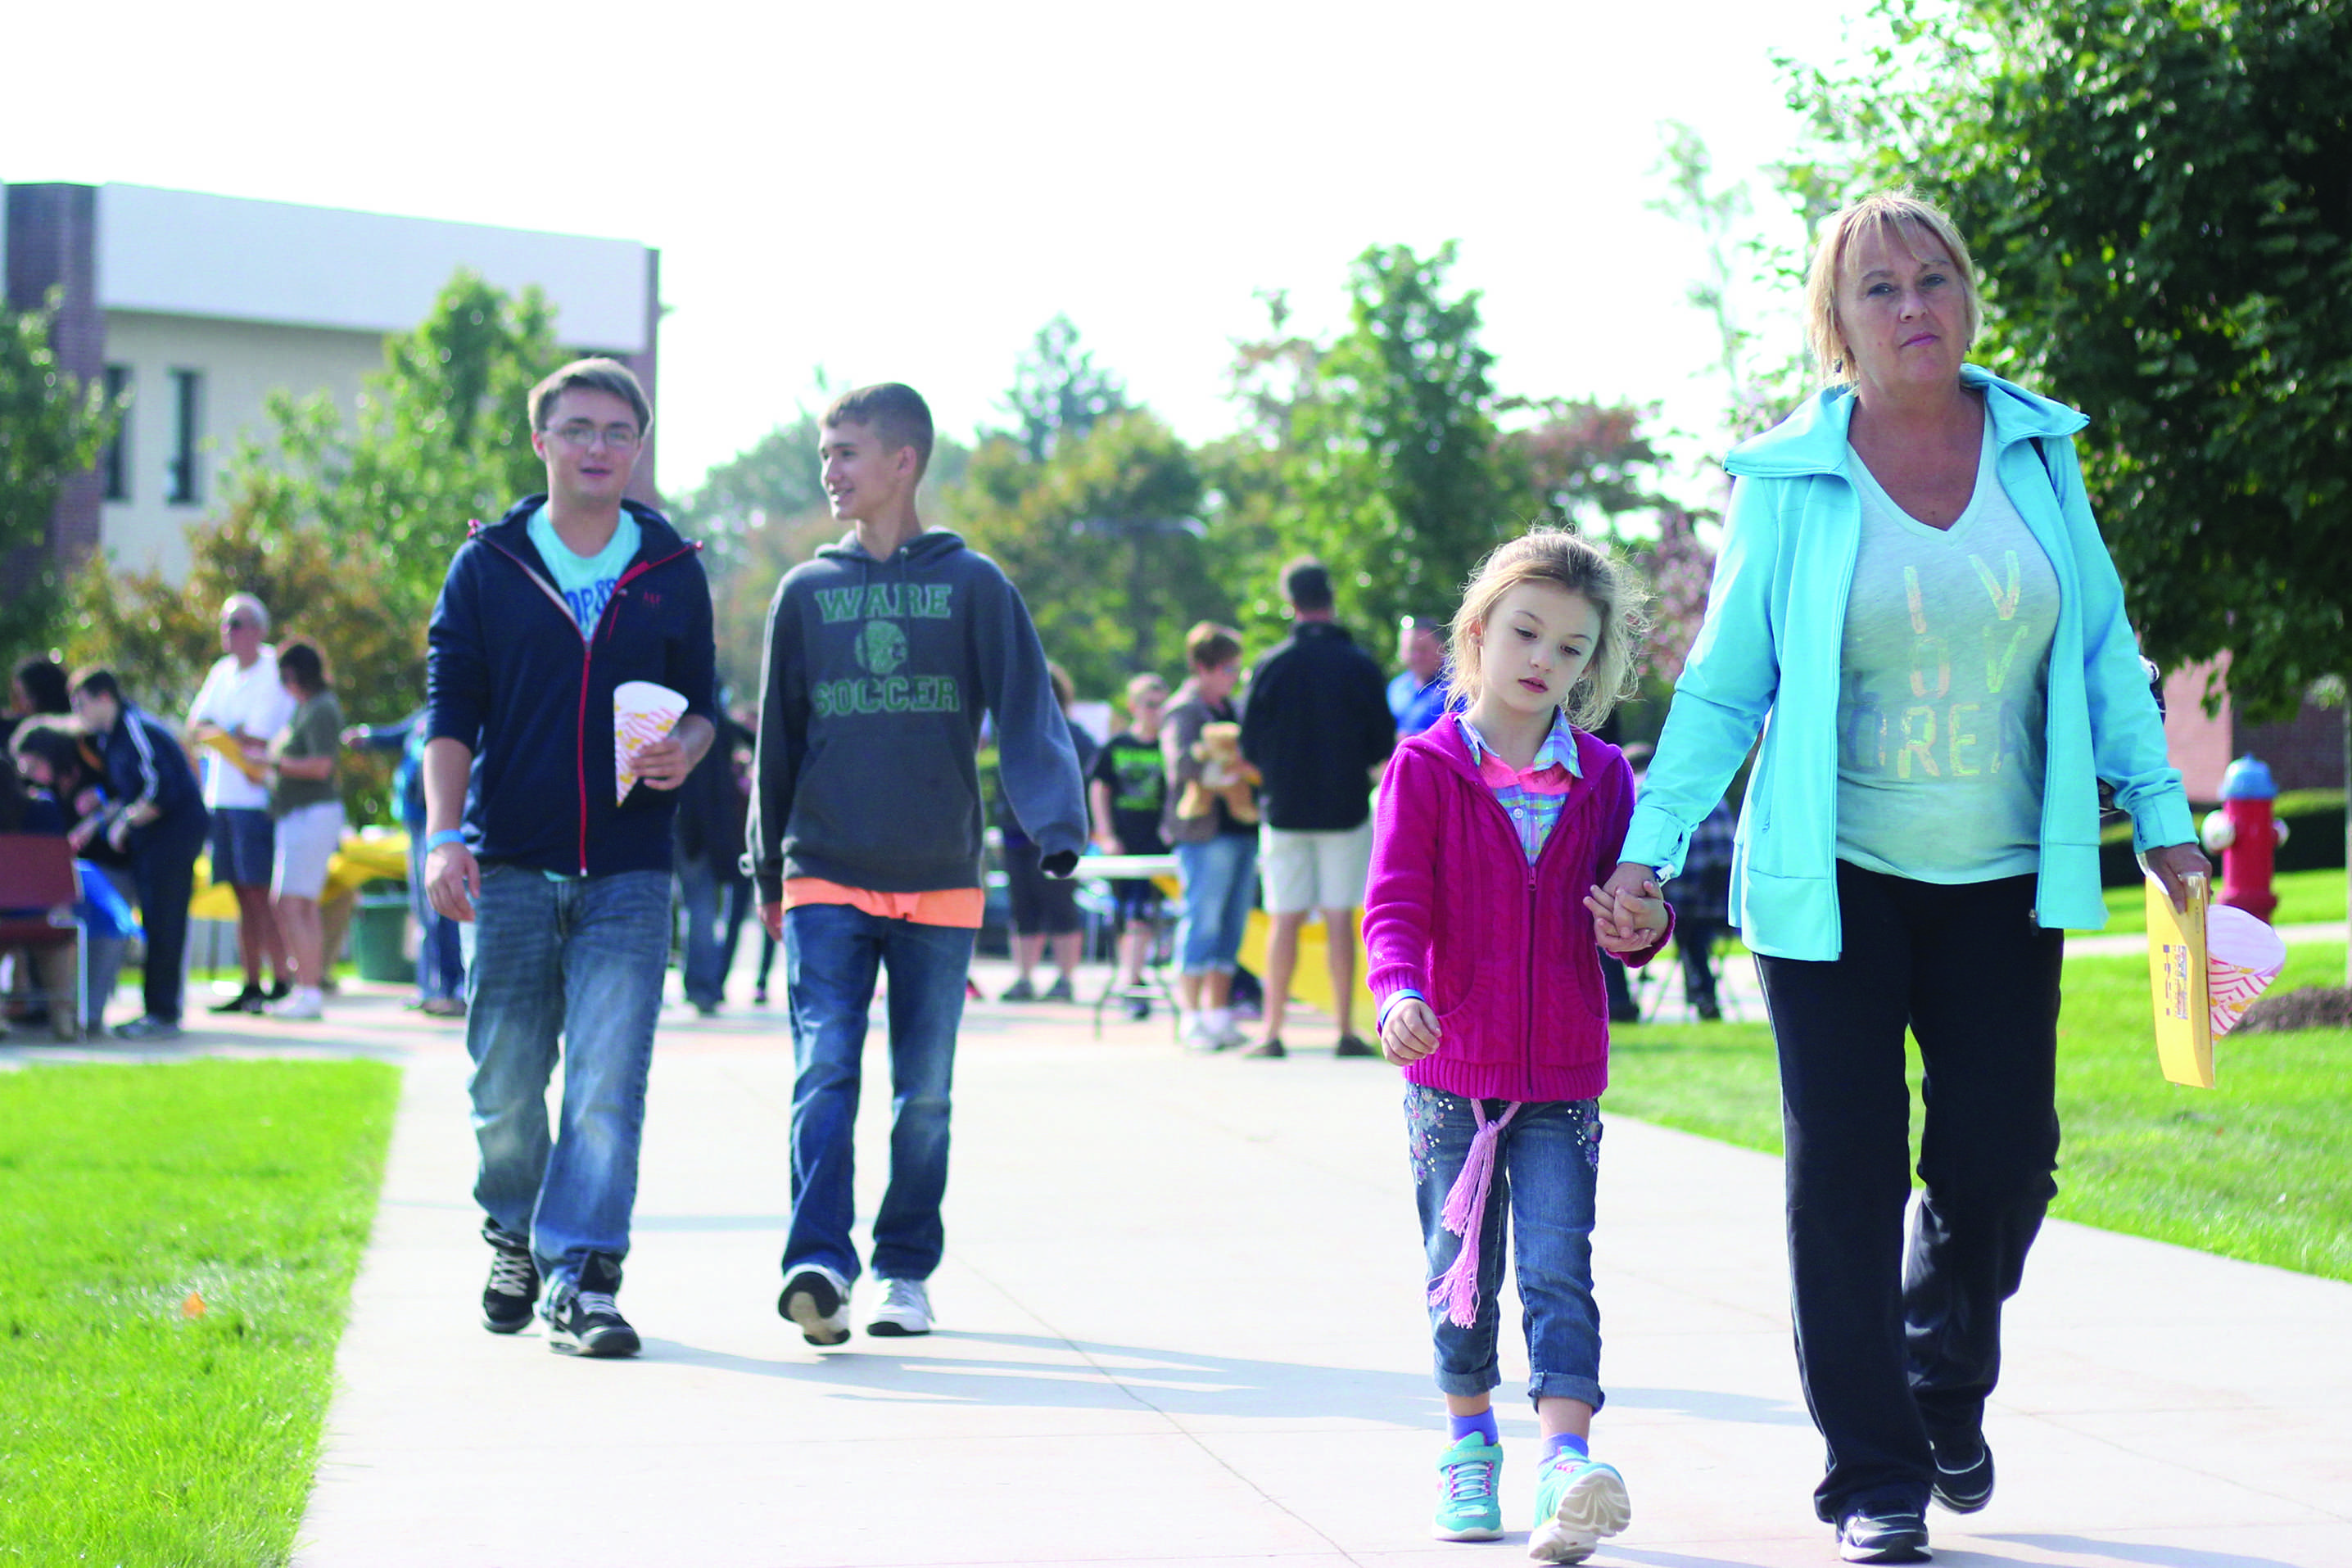 Families come to campus